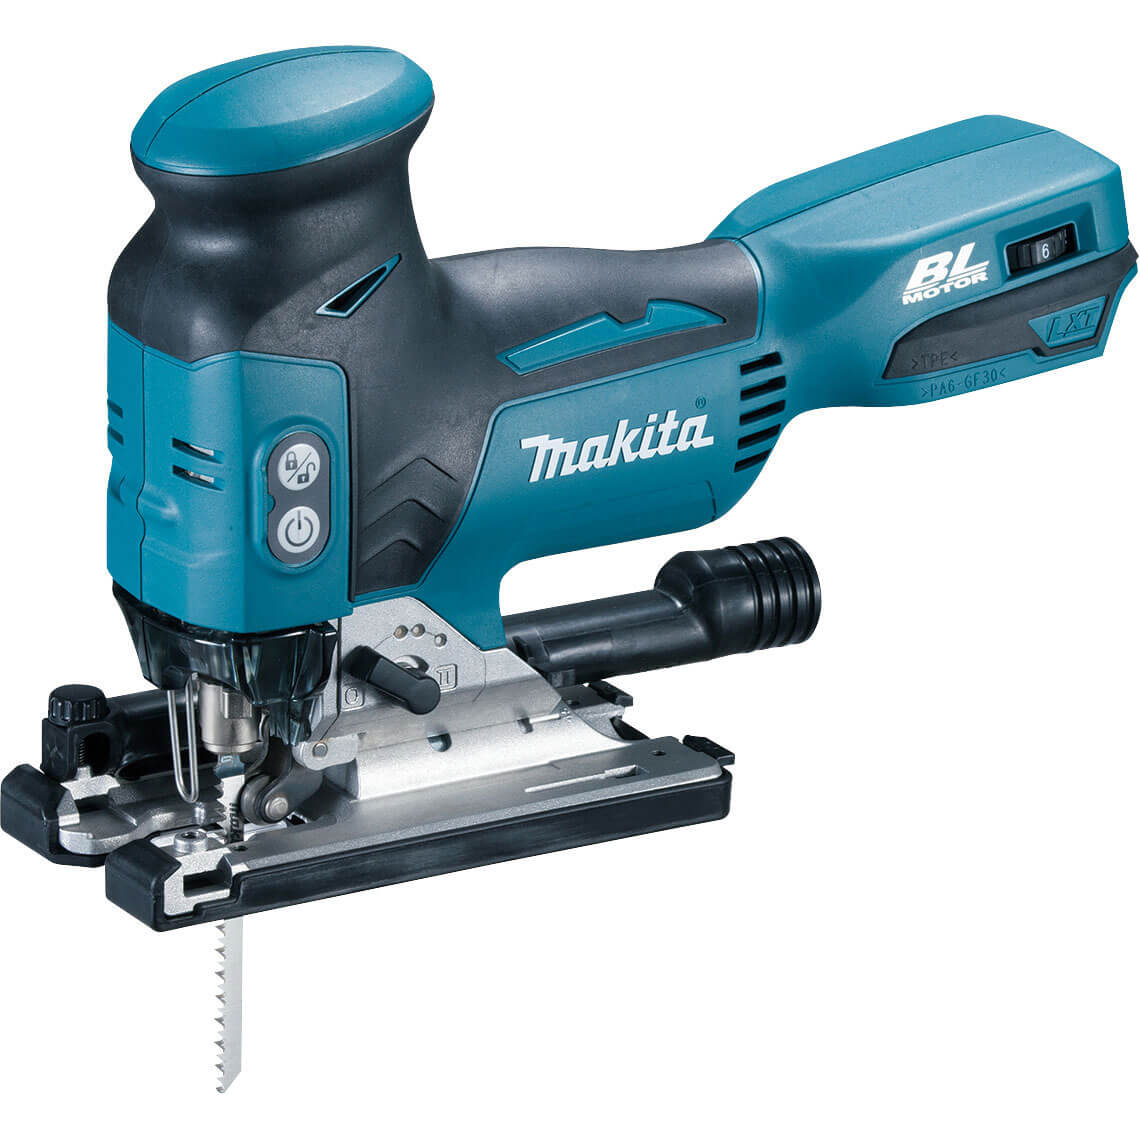 Image of Makita DJV181Z 18v Cordless LXT Brushless Jigsaw without Battery or Charger